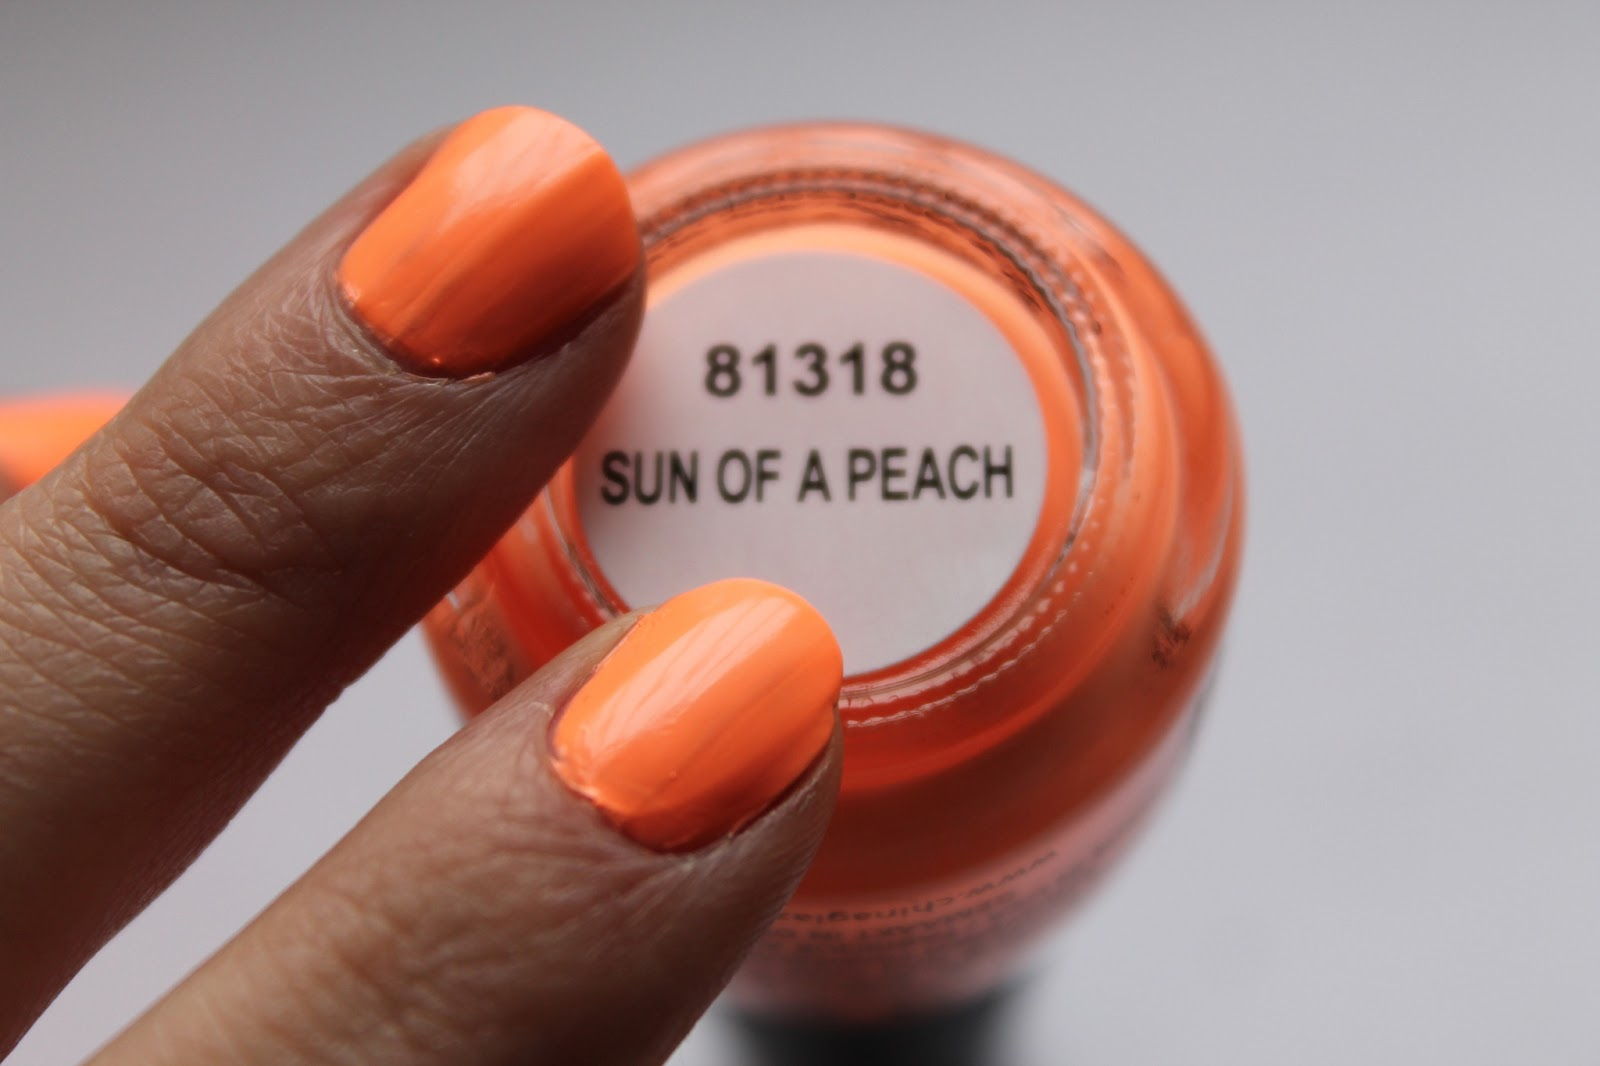 sun-of-a-peach-sunsational-china-glaze